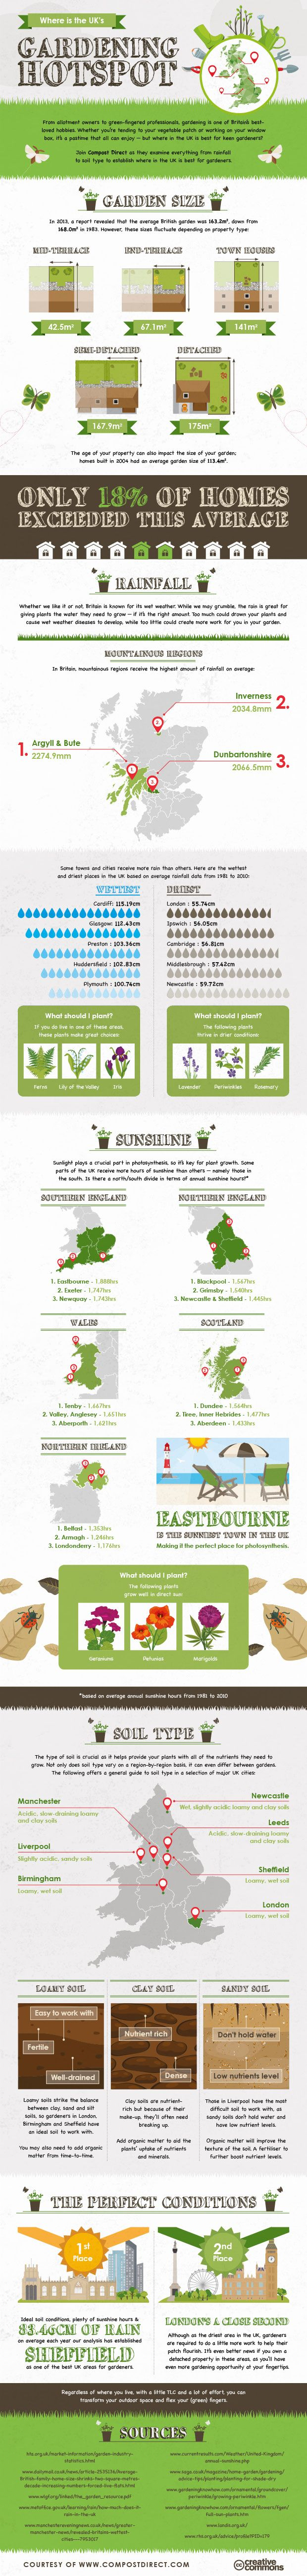 Where can we find the UK's gardening hotspot? #infographic